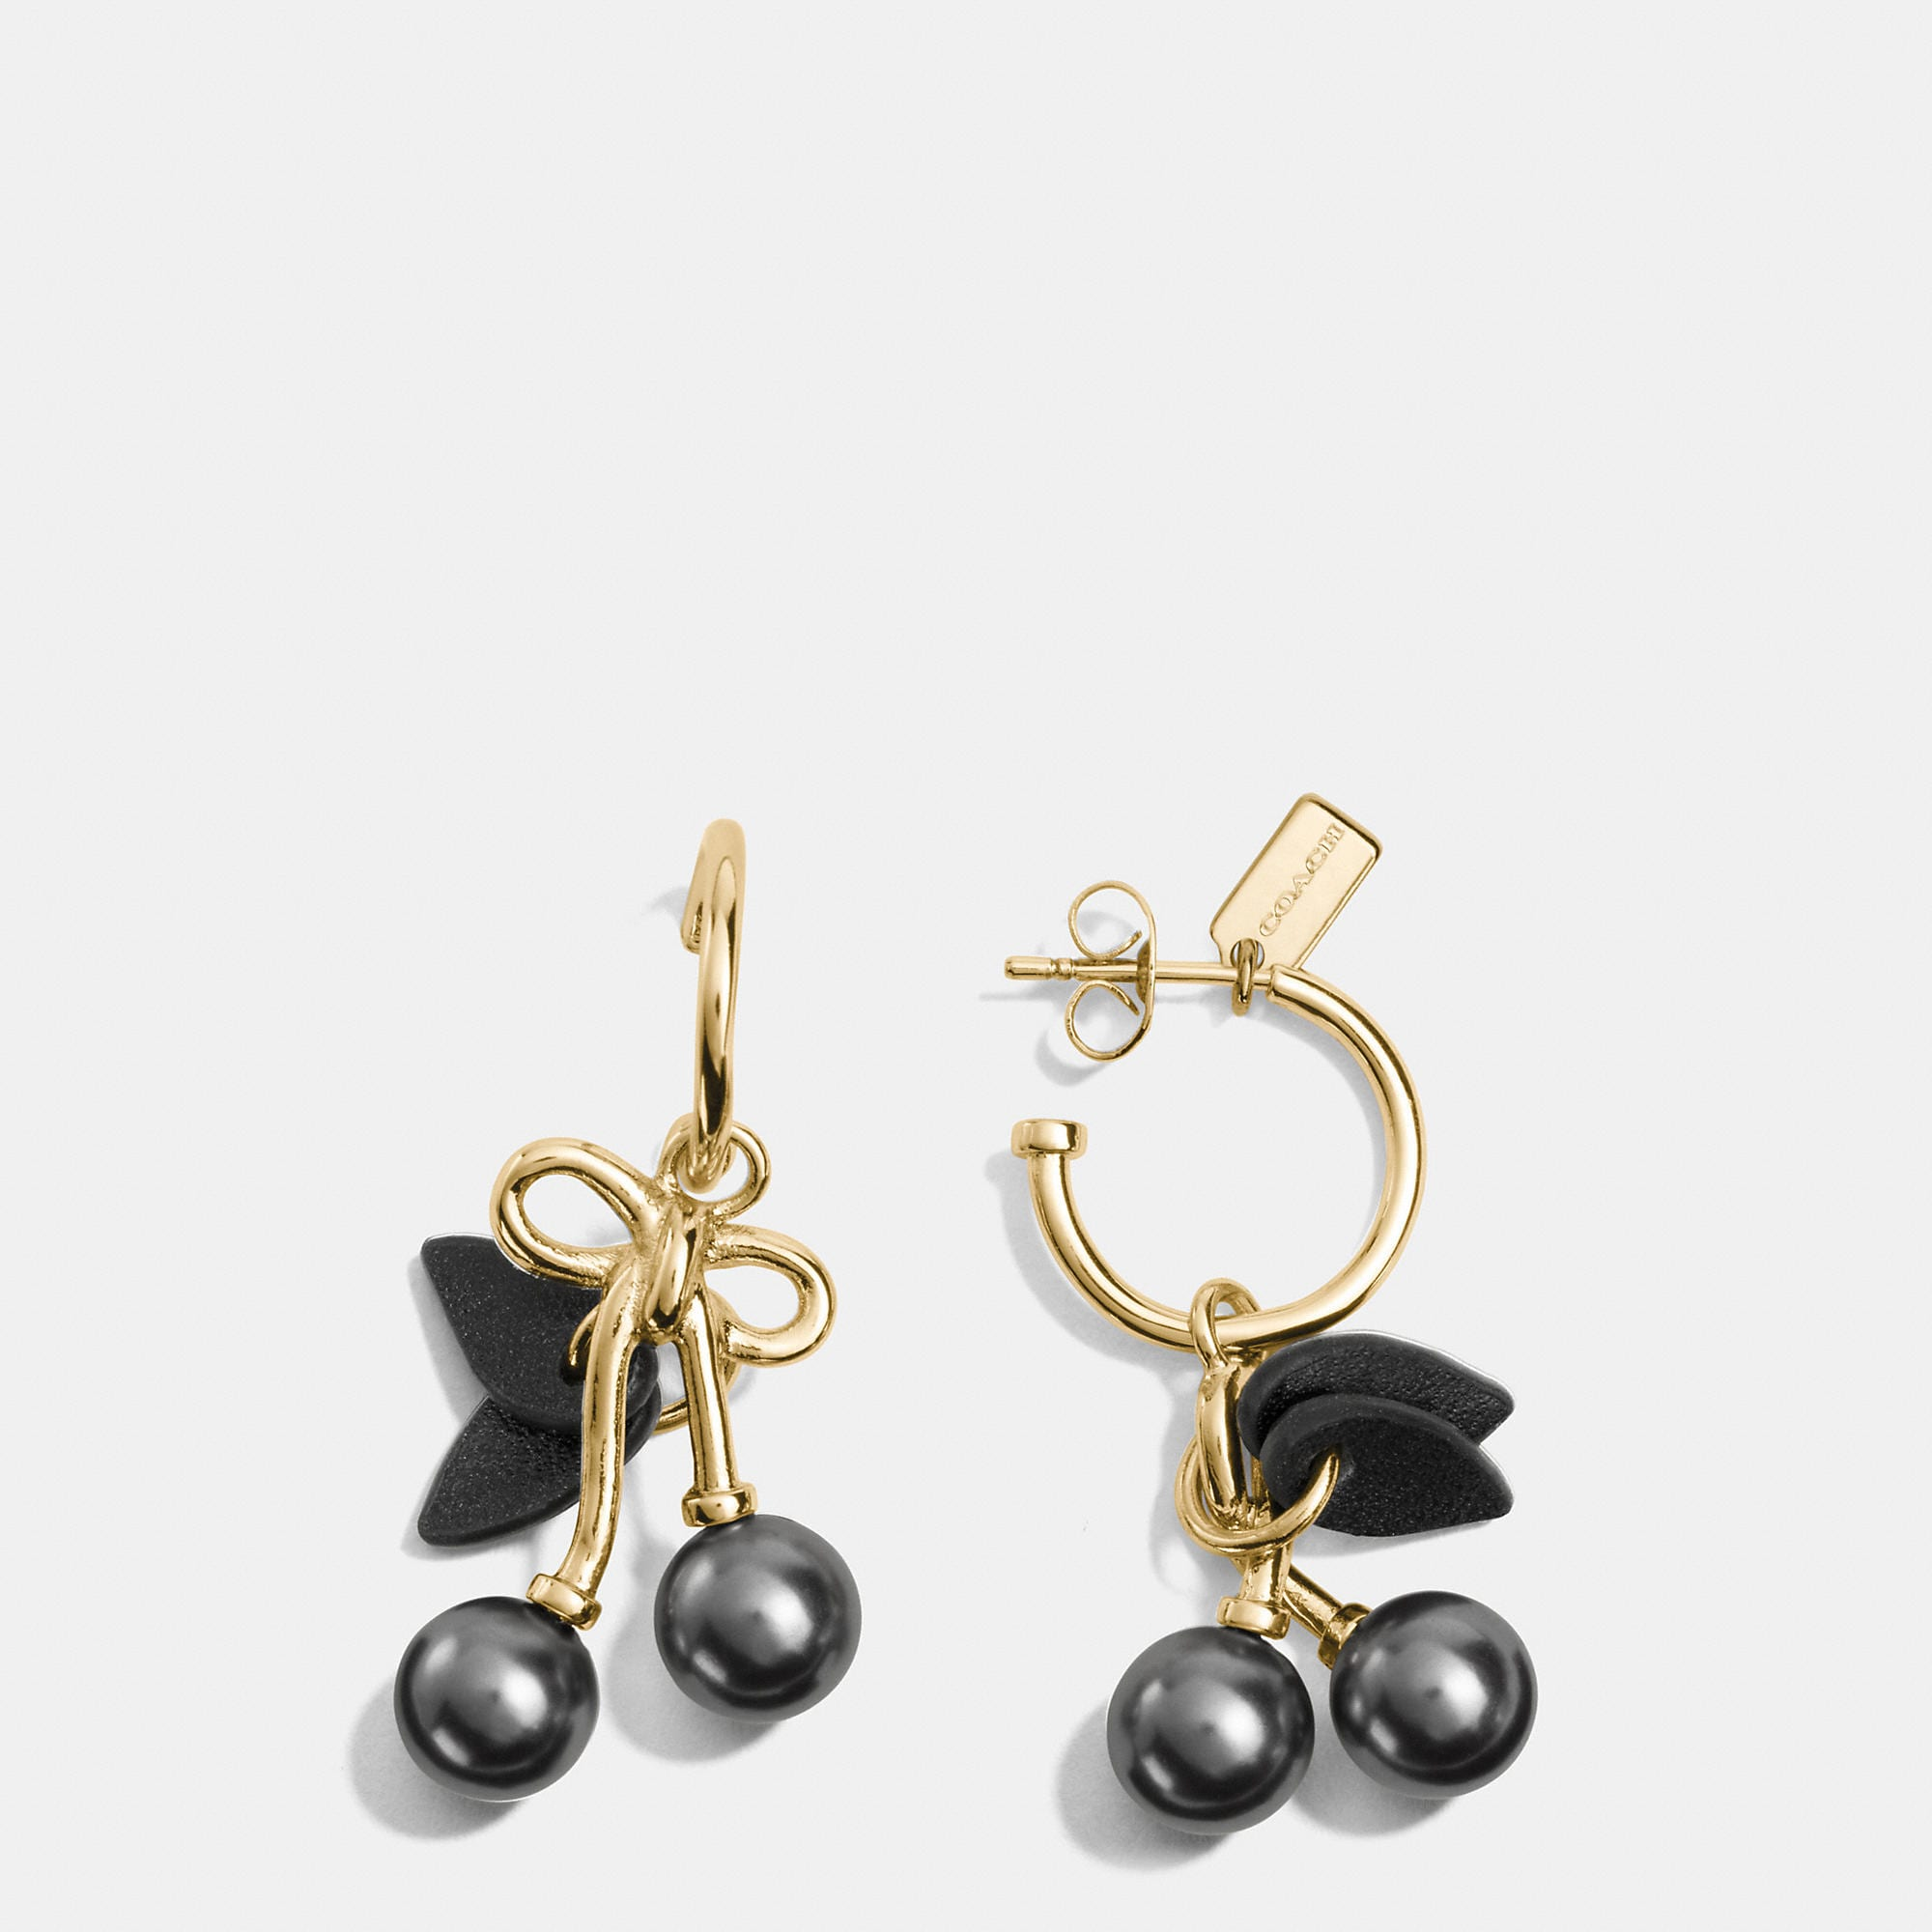 Coach Pearl Kisslock Cherry Hoop Earrings